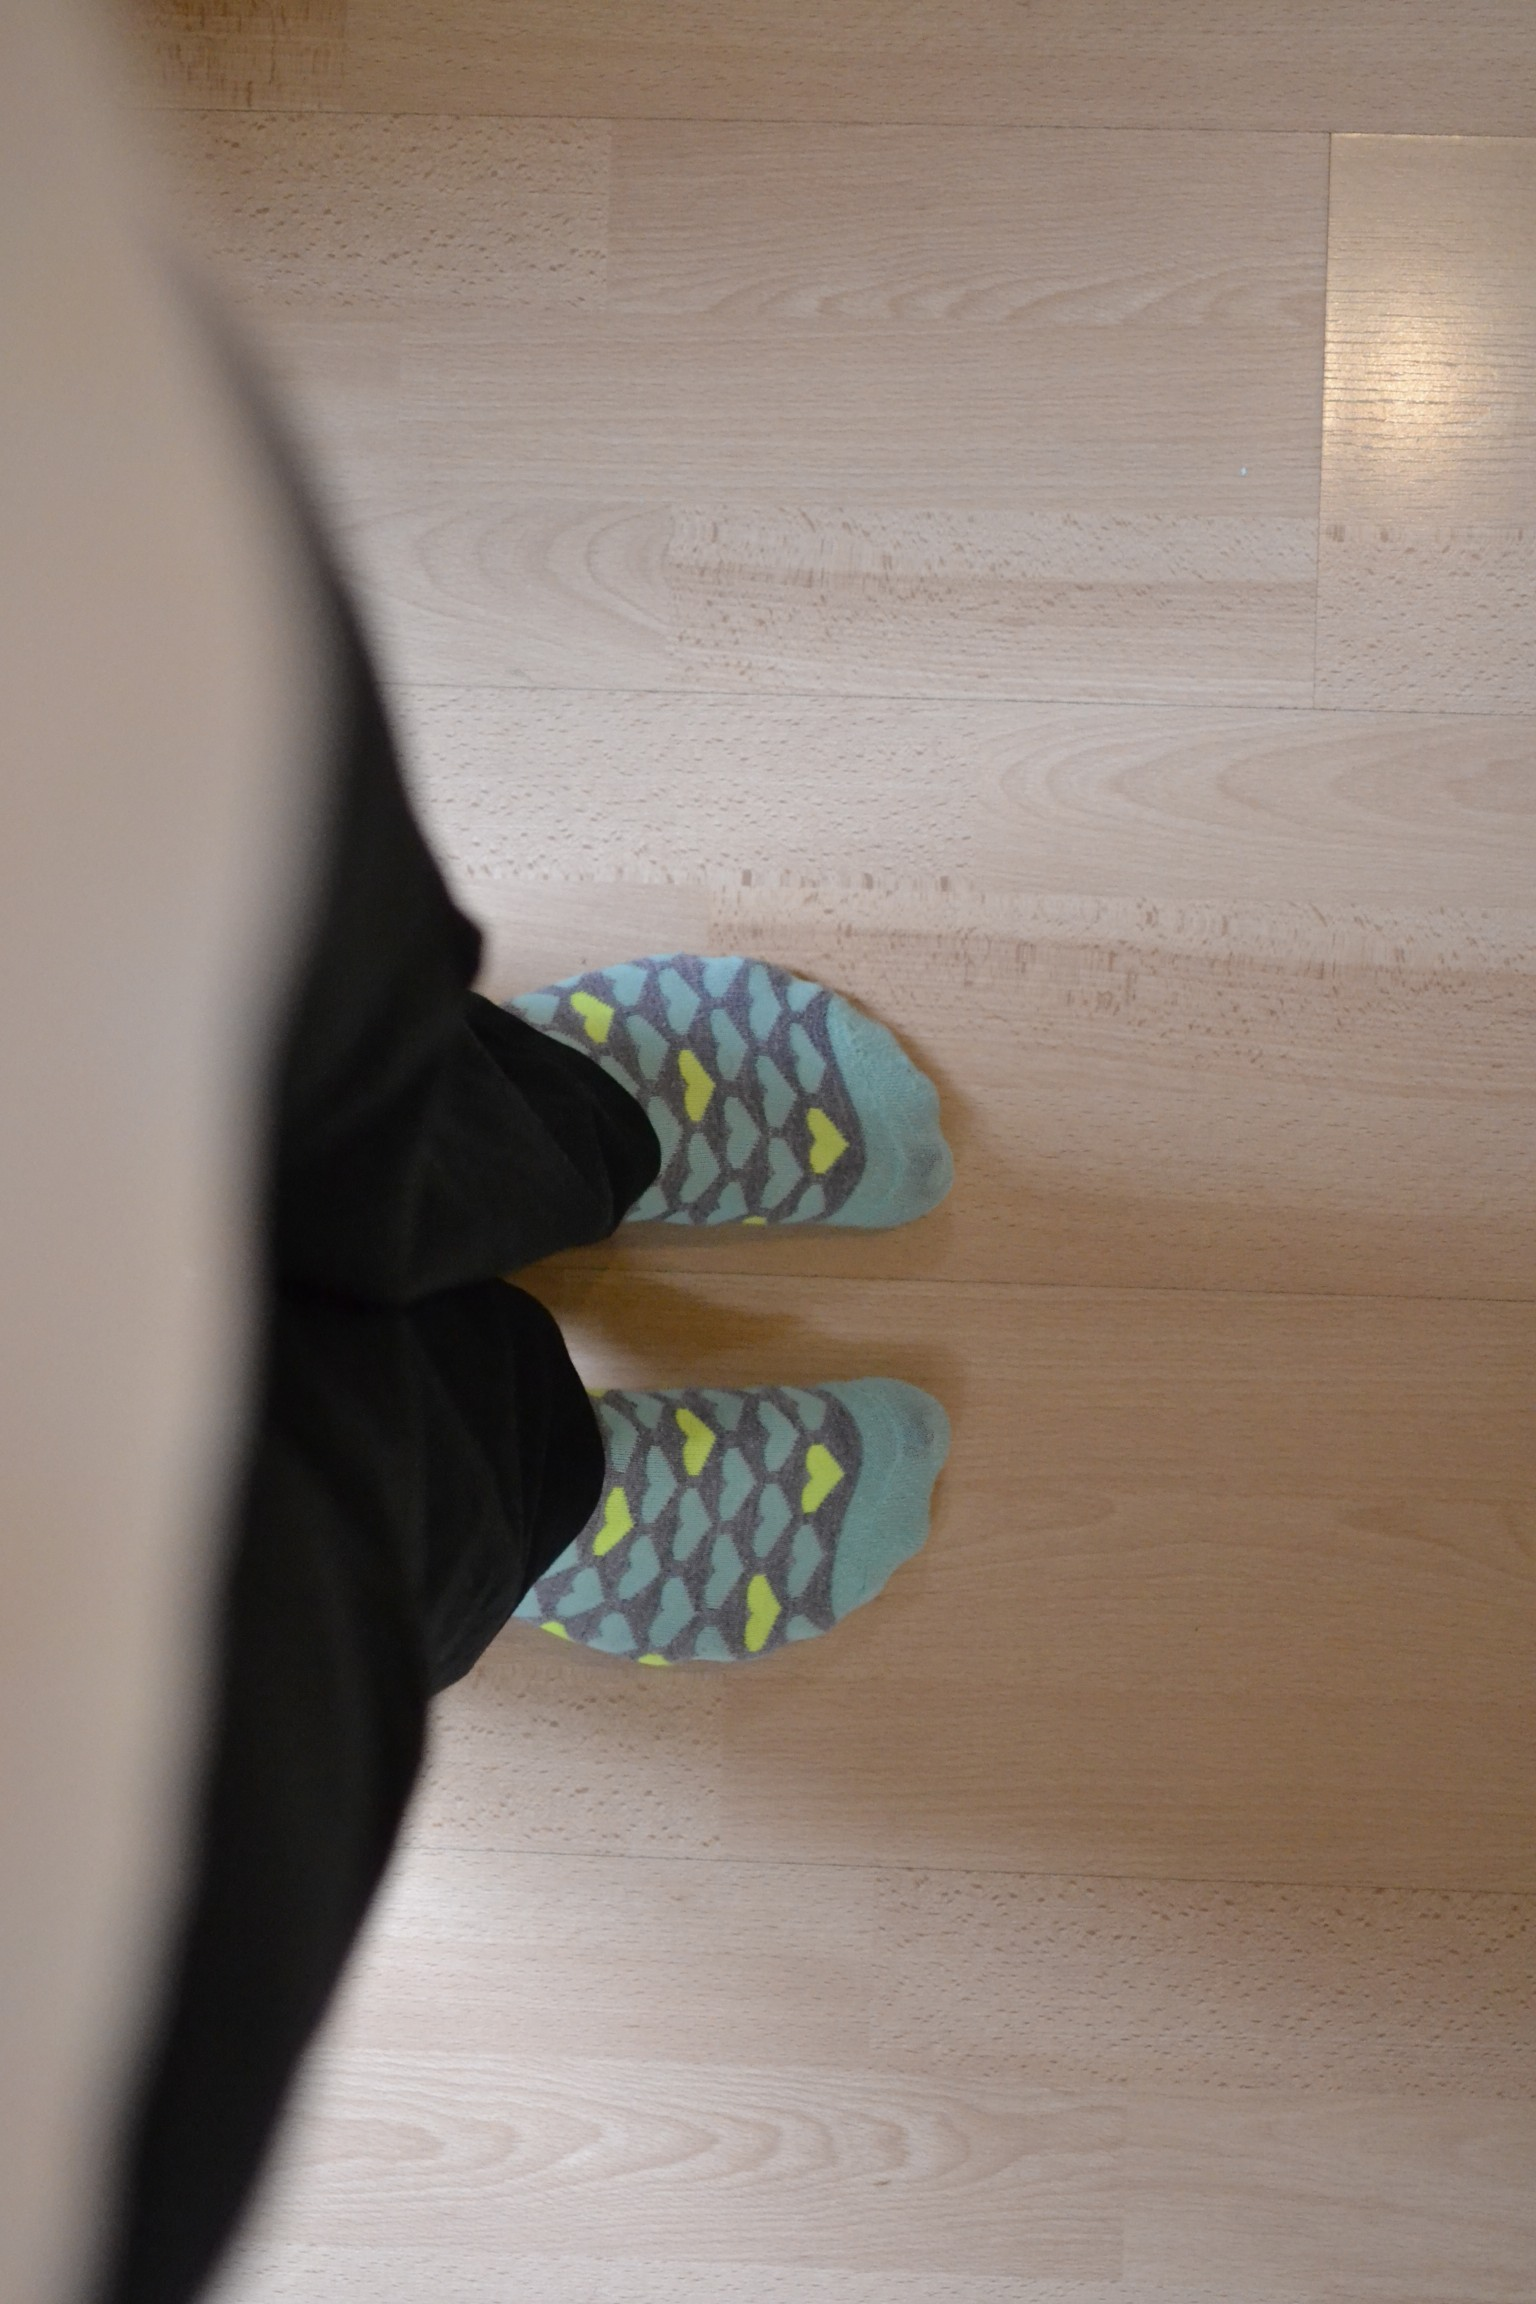 i hate wearing socks in the house but if i really have to, fun socks are best.